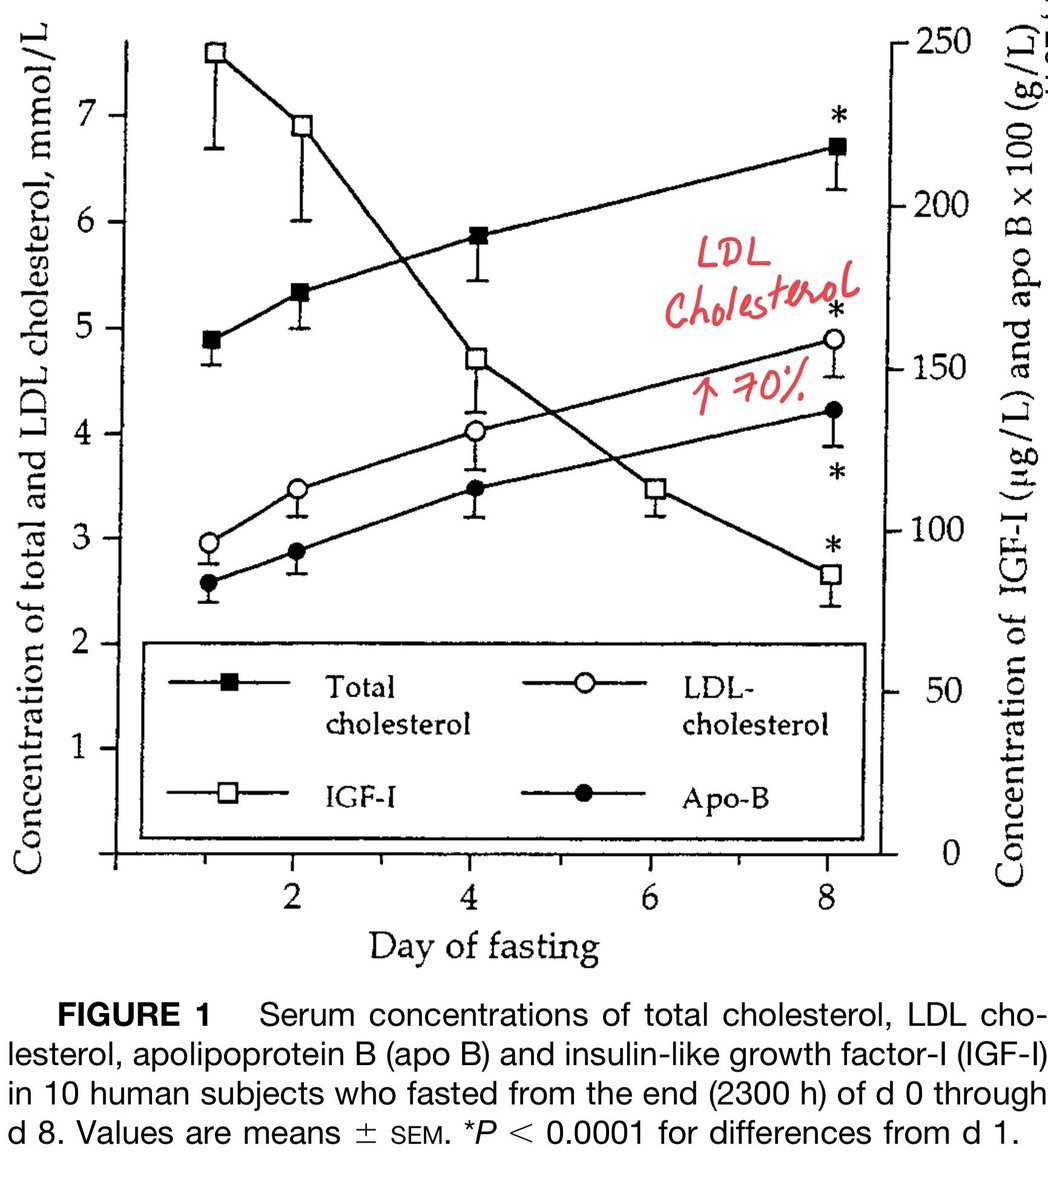 thus, increase in kb with fasting will by default increase both cholesterol  and ldl cholesterol  see figures below   pic twitter com/95ascnsypj